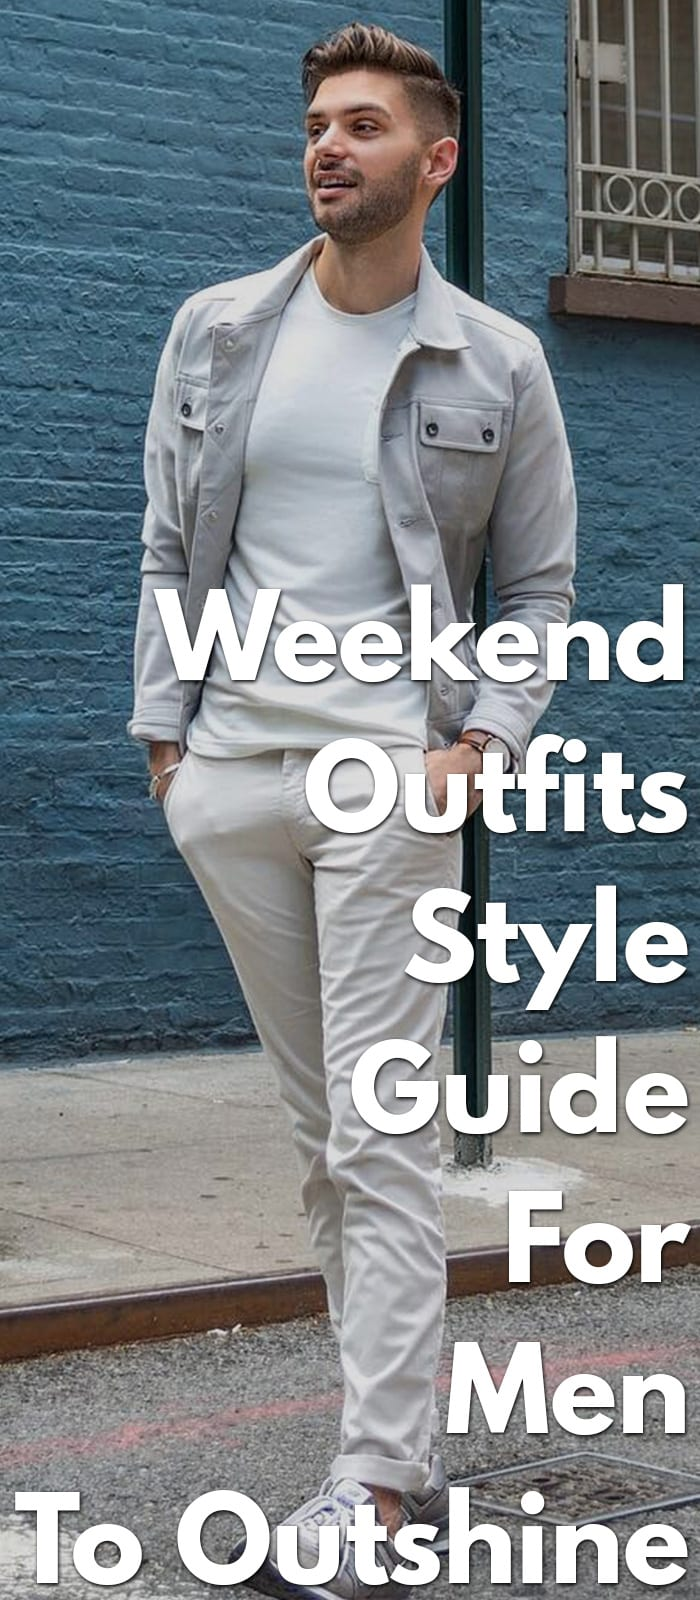 Weekend-Outfits-Style-Guide-For-Men-To-Outshine......